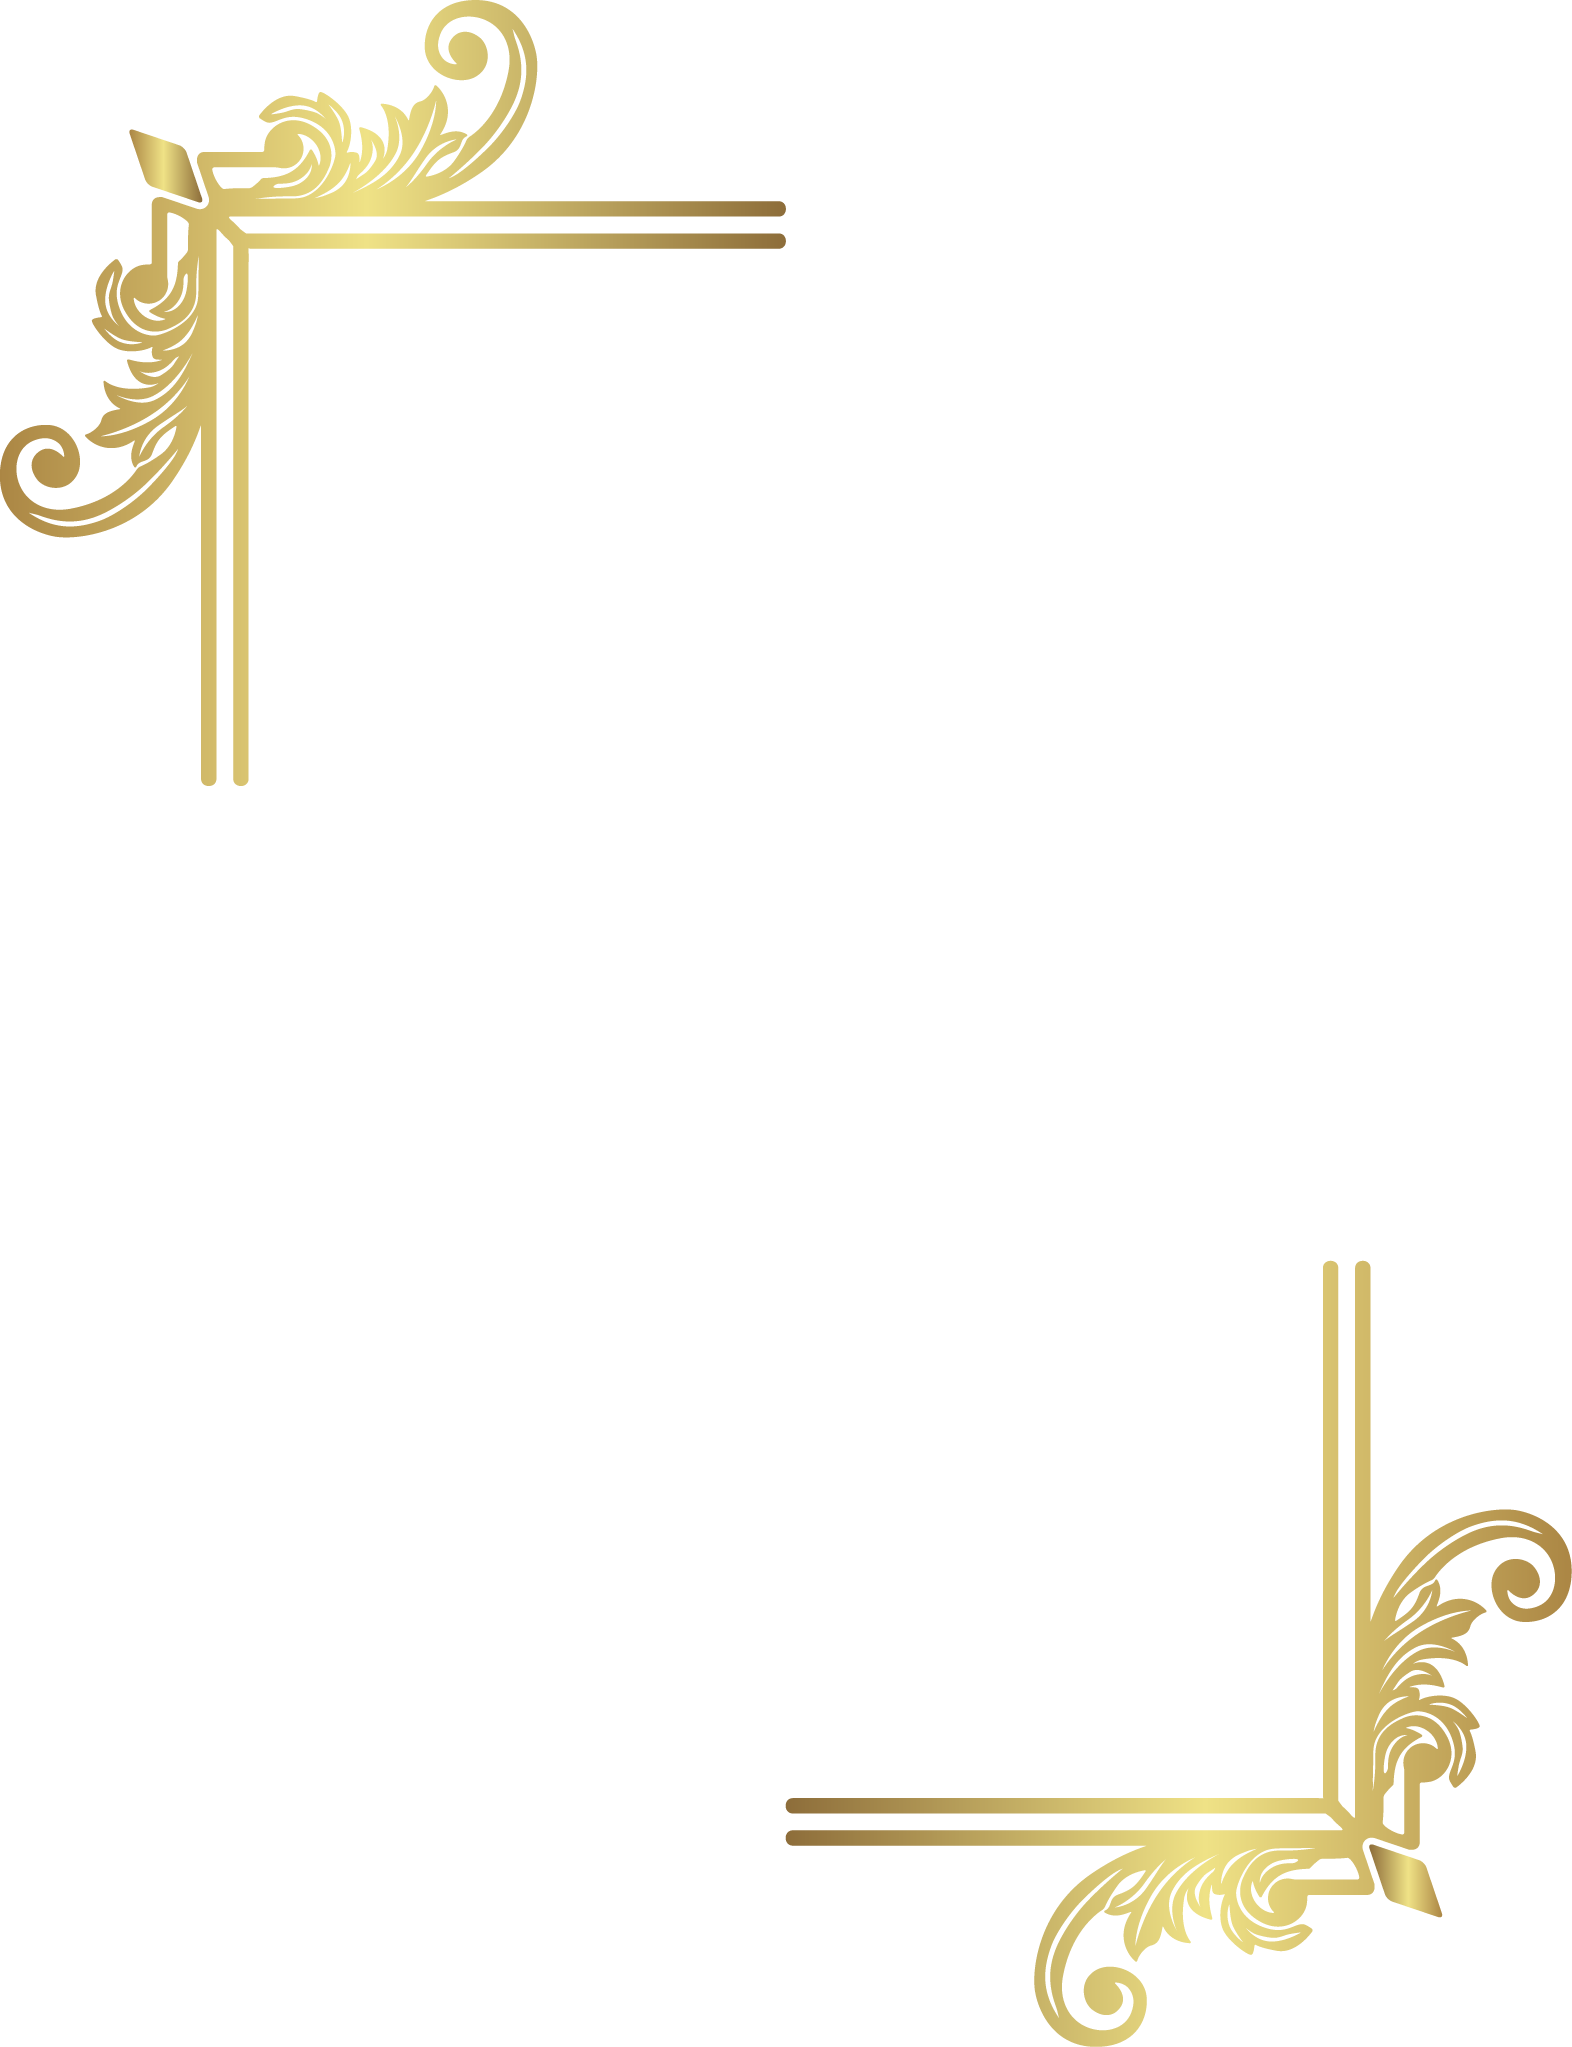 Open Full Size Decorative Border Clipart Png Image Download Transparent Png Image And Share Seekpng With Friend Clip Art Borders Decorative Borders Png Images